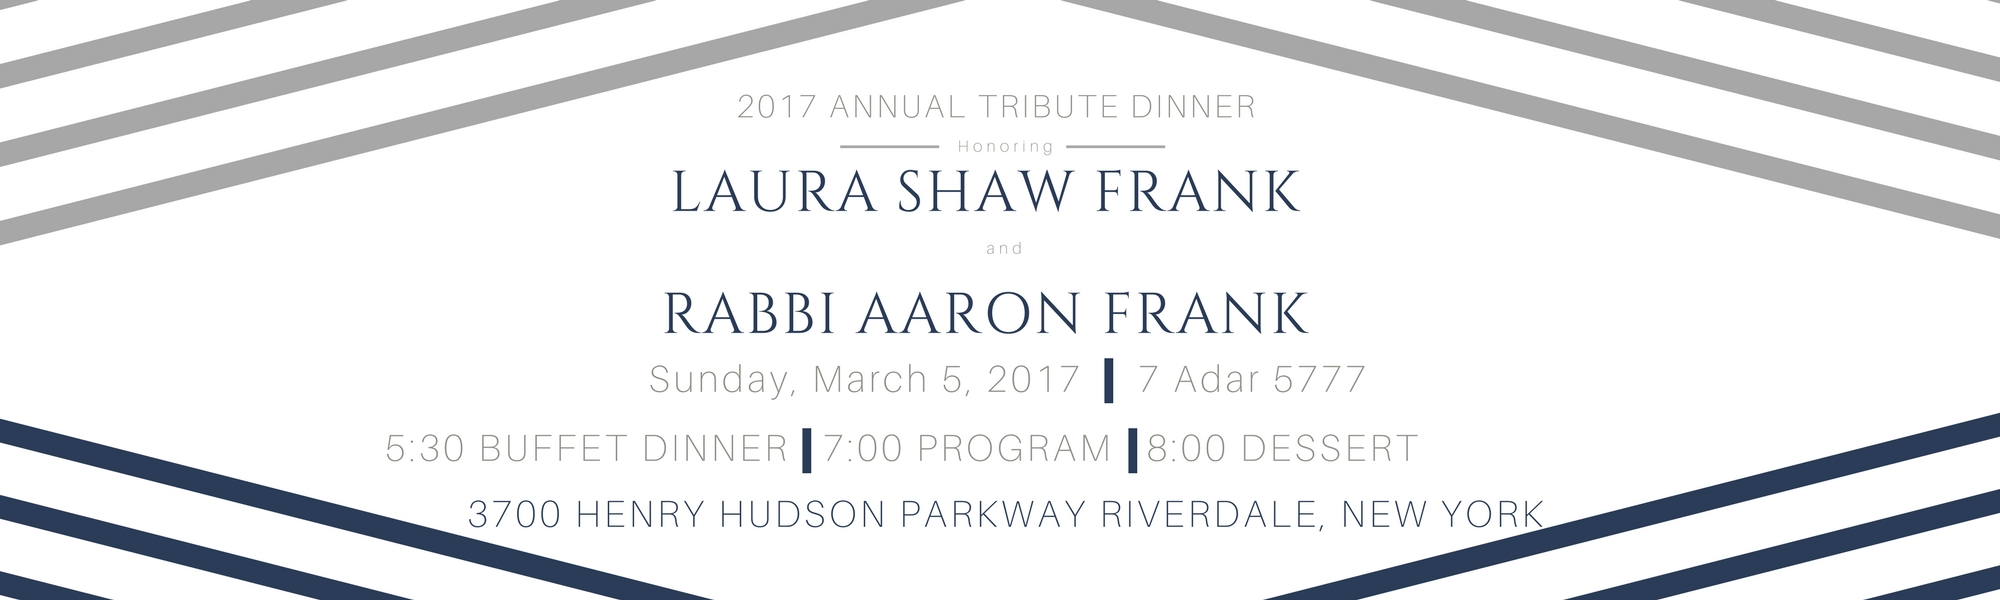 Annual Tribute Dinner 2017 - Yeshivat Chovevei Torah, Setting the standard in rabbinic education